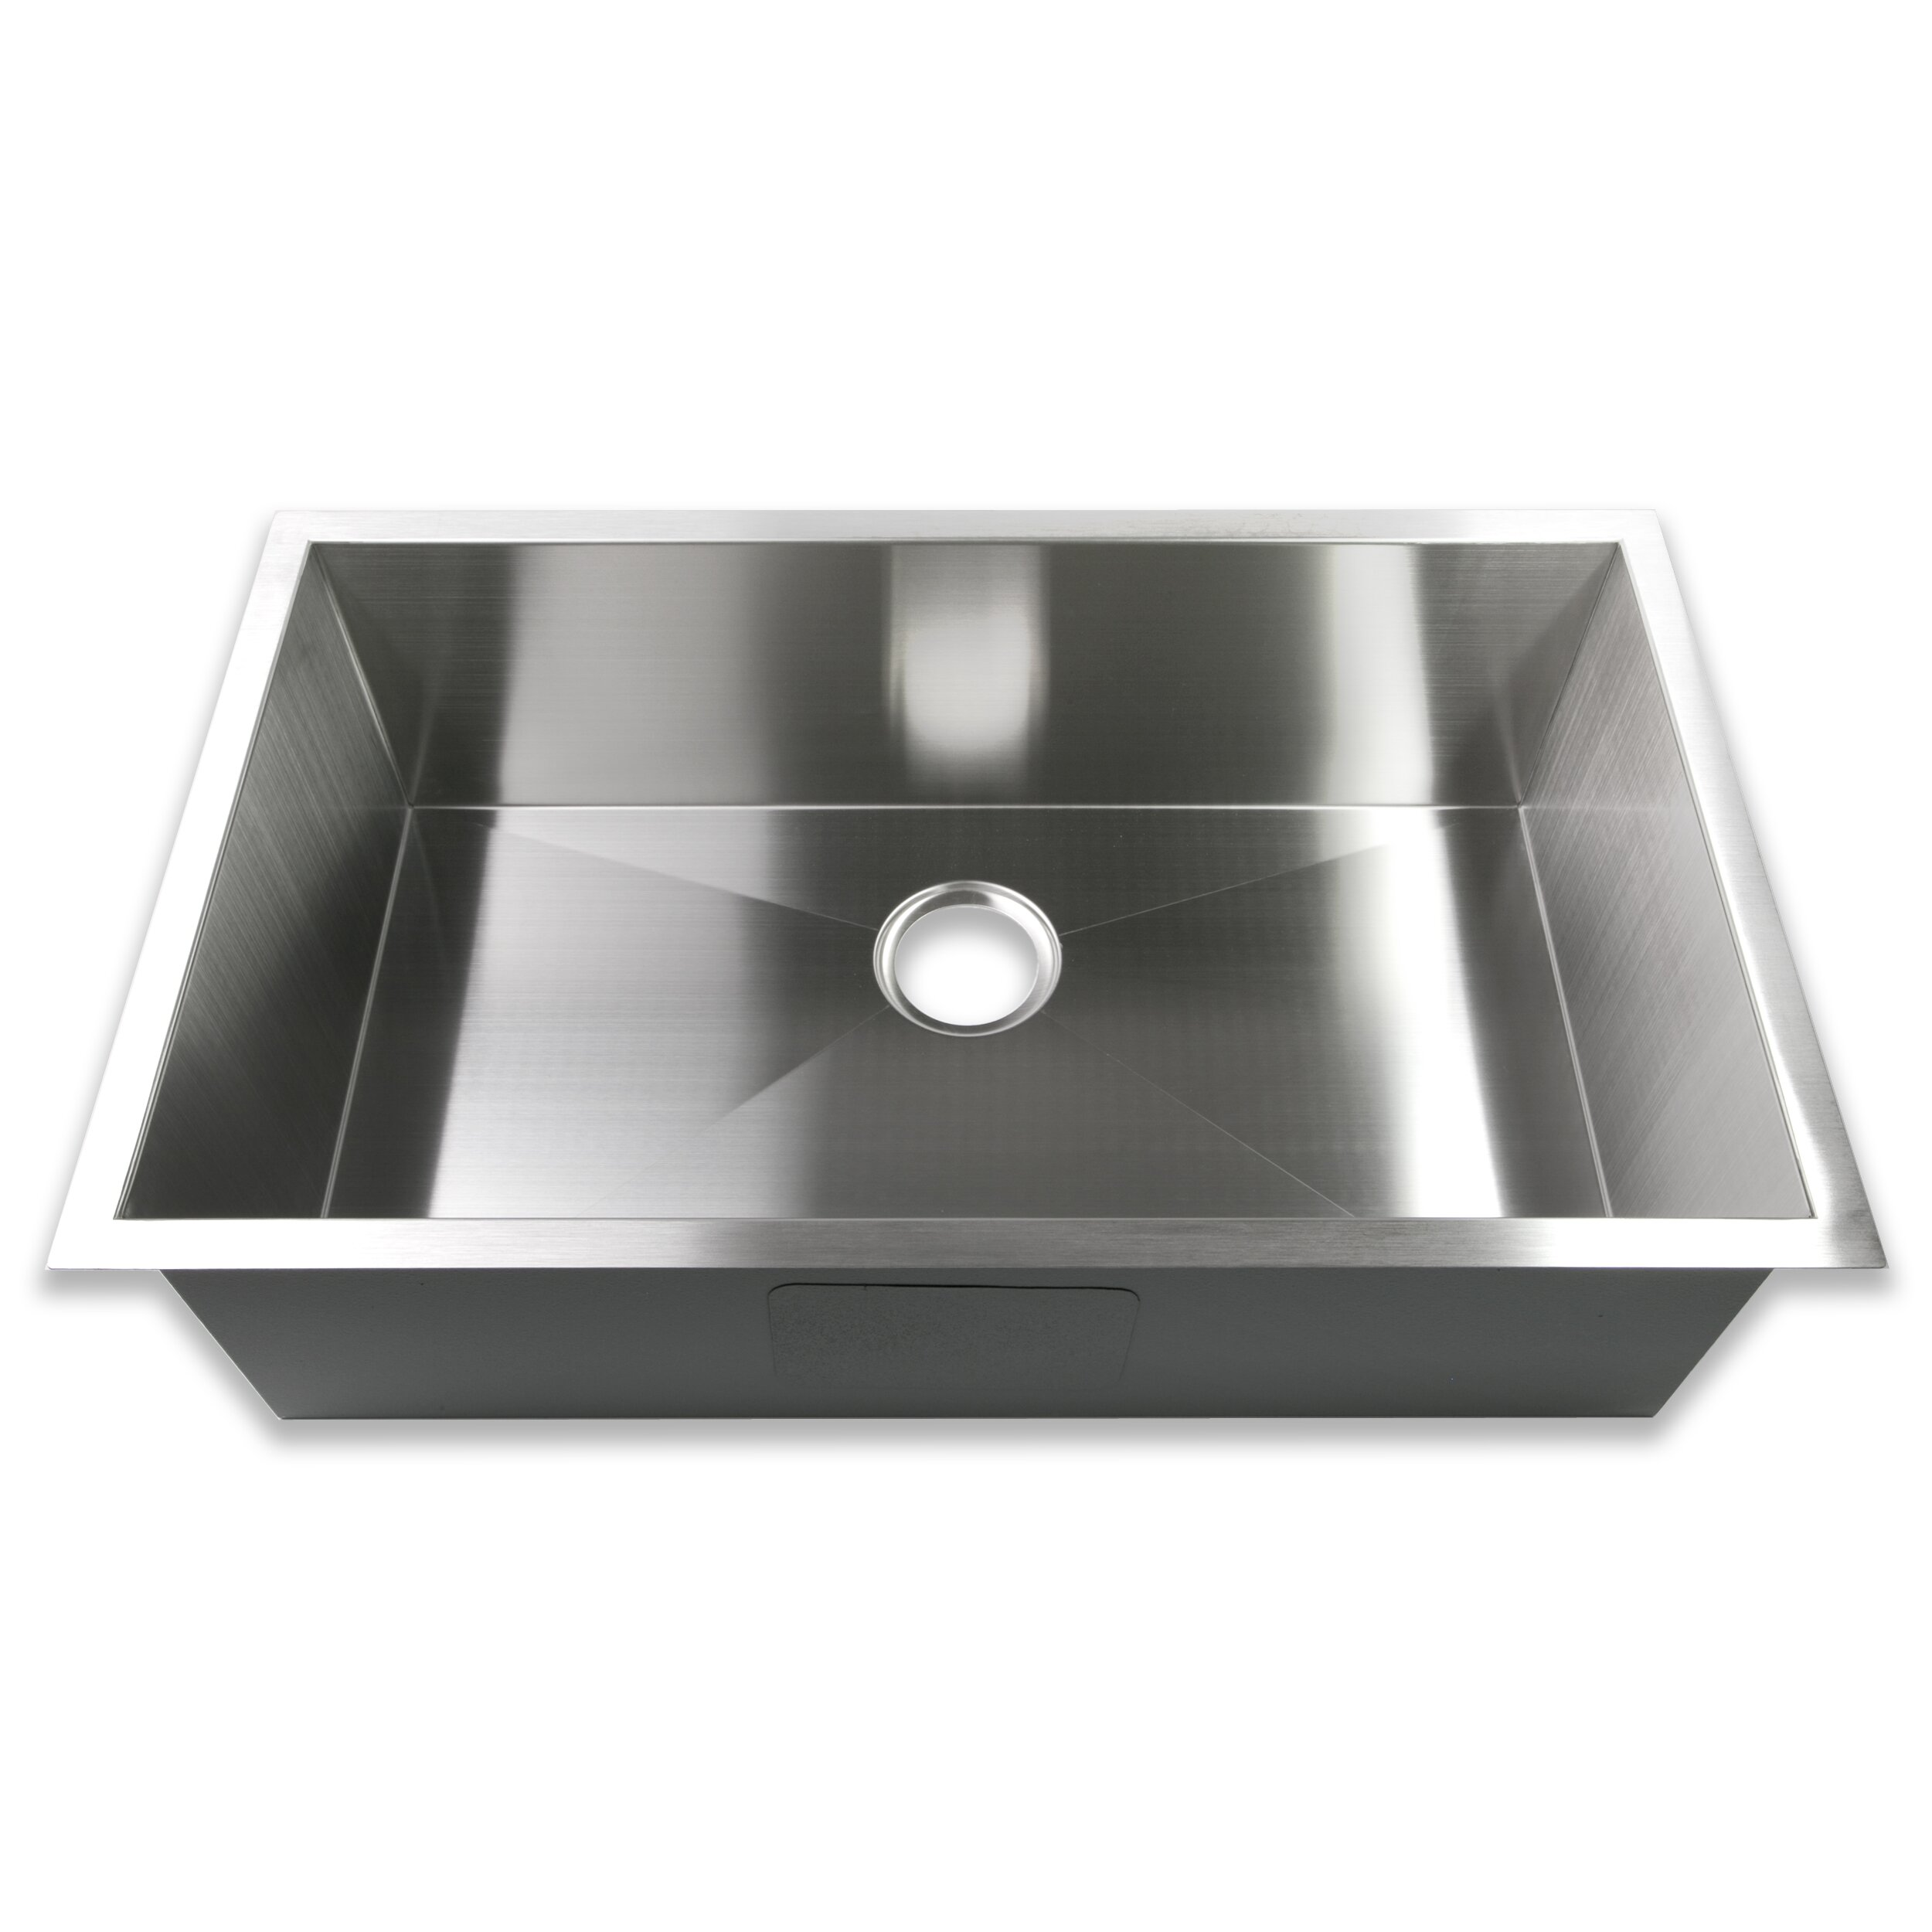 16 Gauge Stainless Steel Sink : ... Single Bowl 16 Gauge Stainless Steel Handmade Zero Radius Kitchen Sink